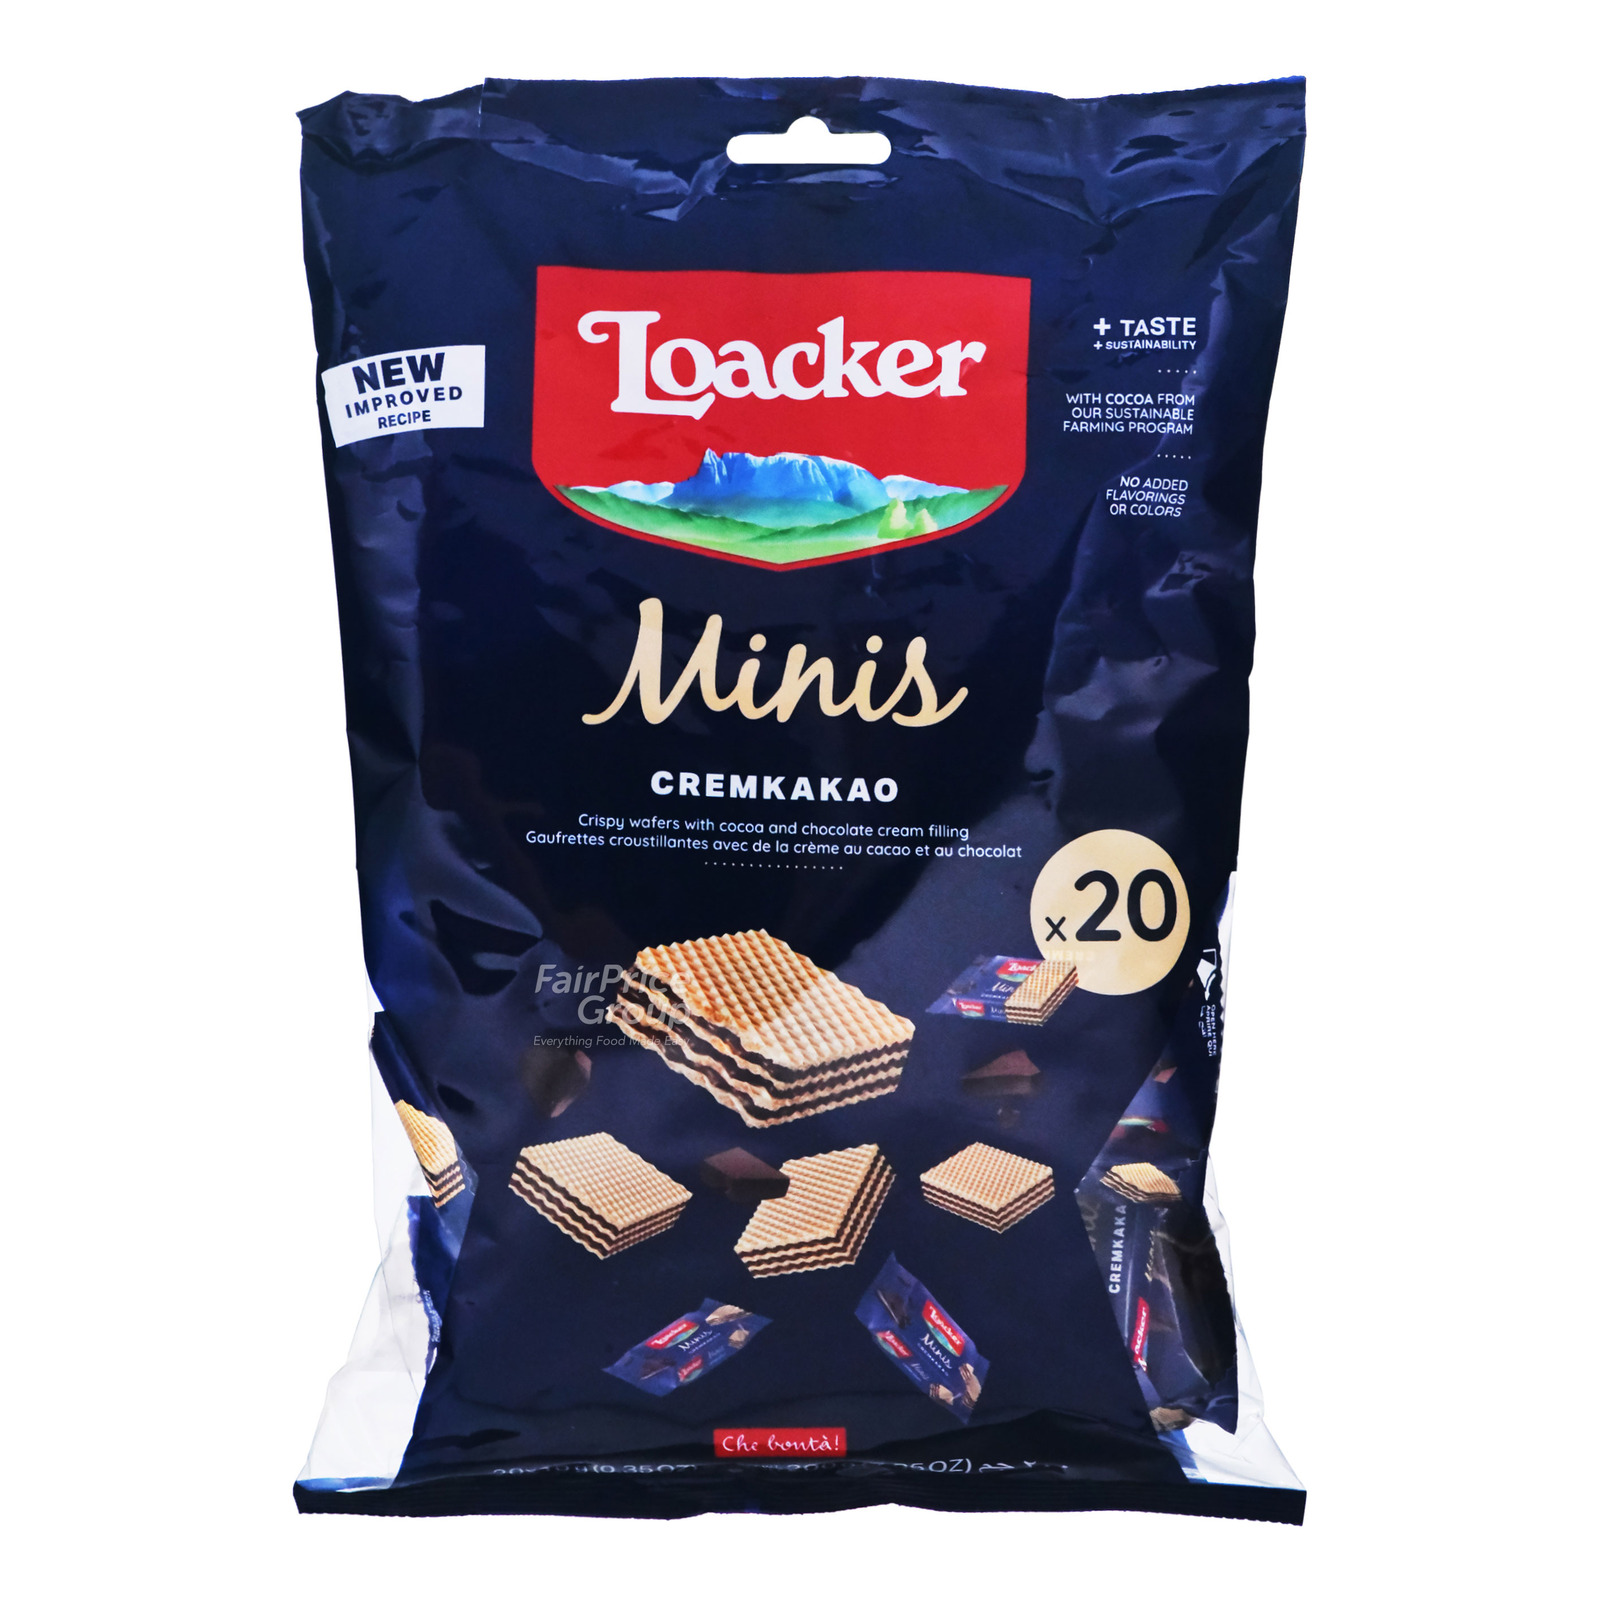 Loacker Classic Mini Crispy Wafers - Cremkakao